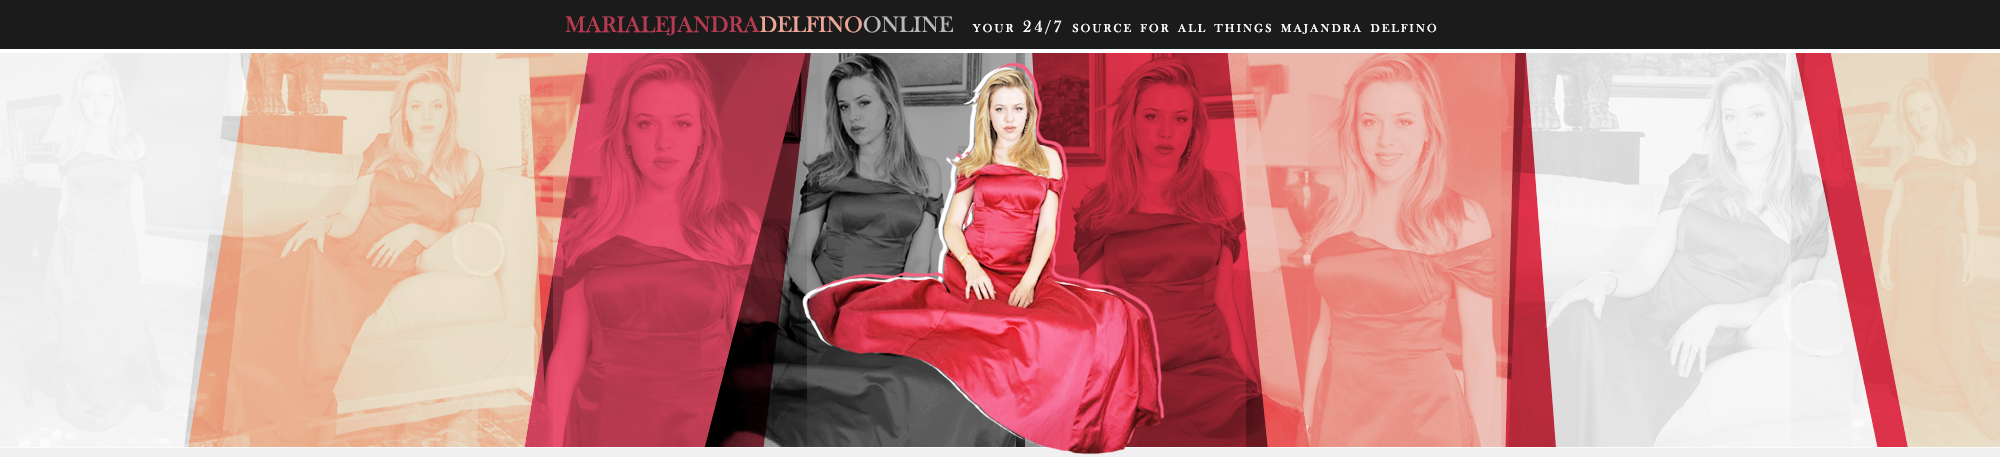 MAD - Online - Your #1 Source For Everything Majandra Delfino